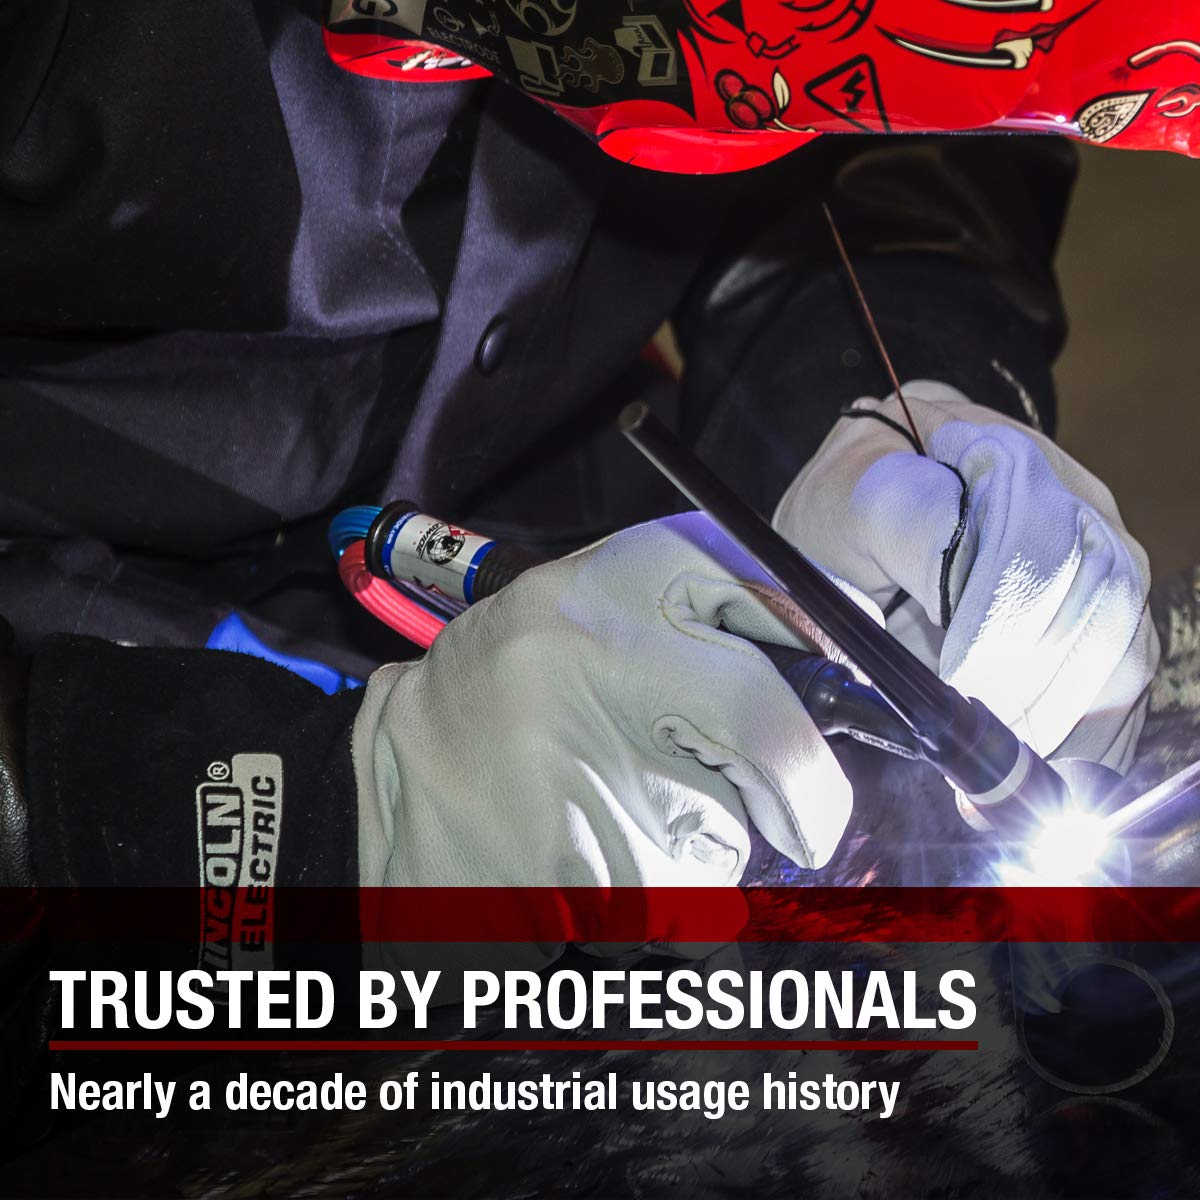 K2981-XL Lincoln Electric Welding Gear and Tools High Dexterity Lincoln Electric Grain Leather TIG Welding Gloves XL